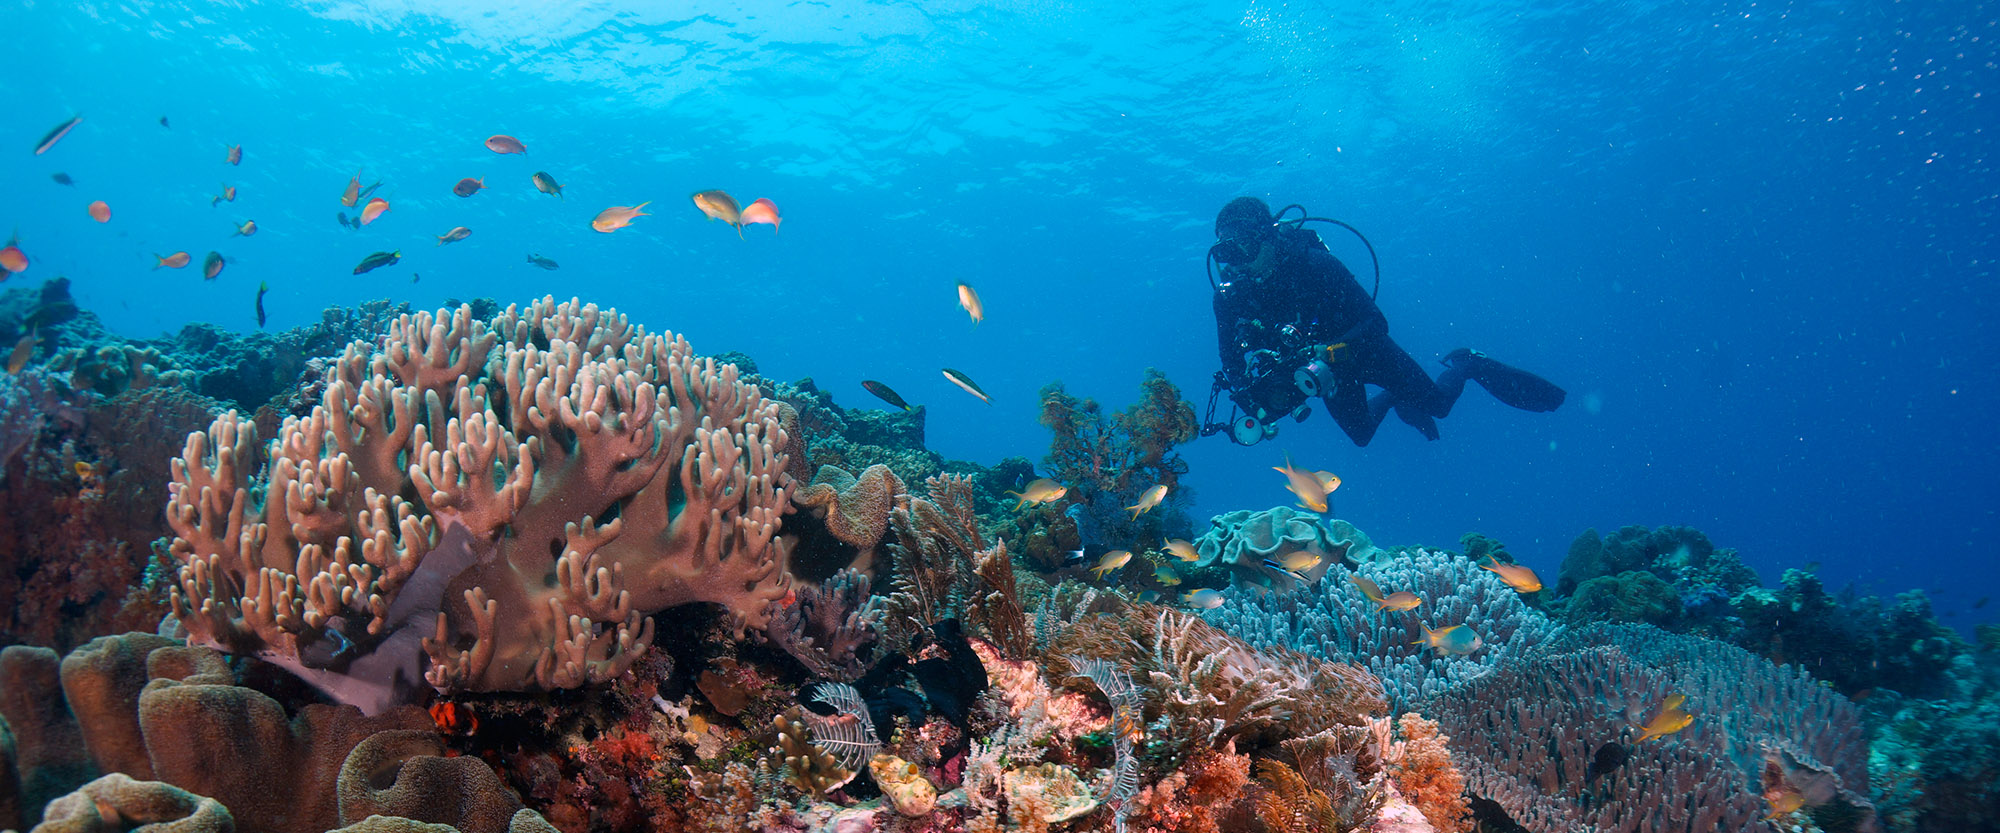 scubadiving diver underwaterphotography rote island indonesia padi